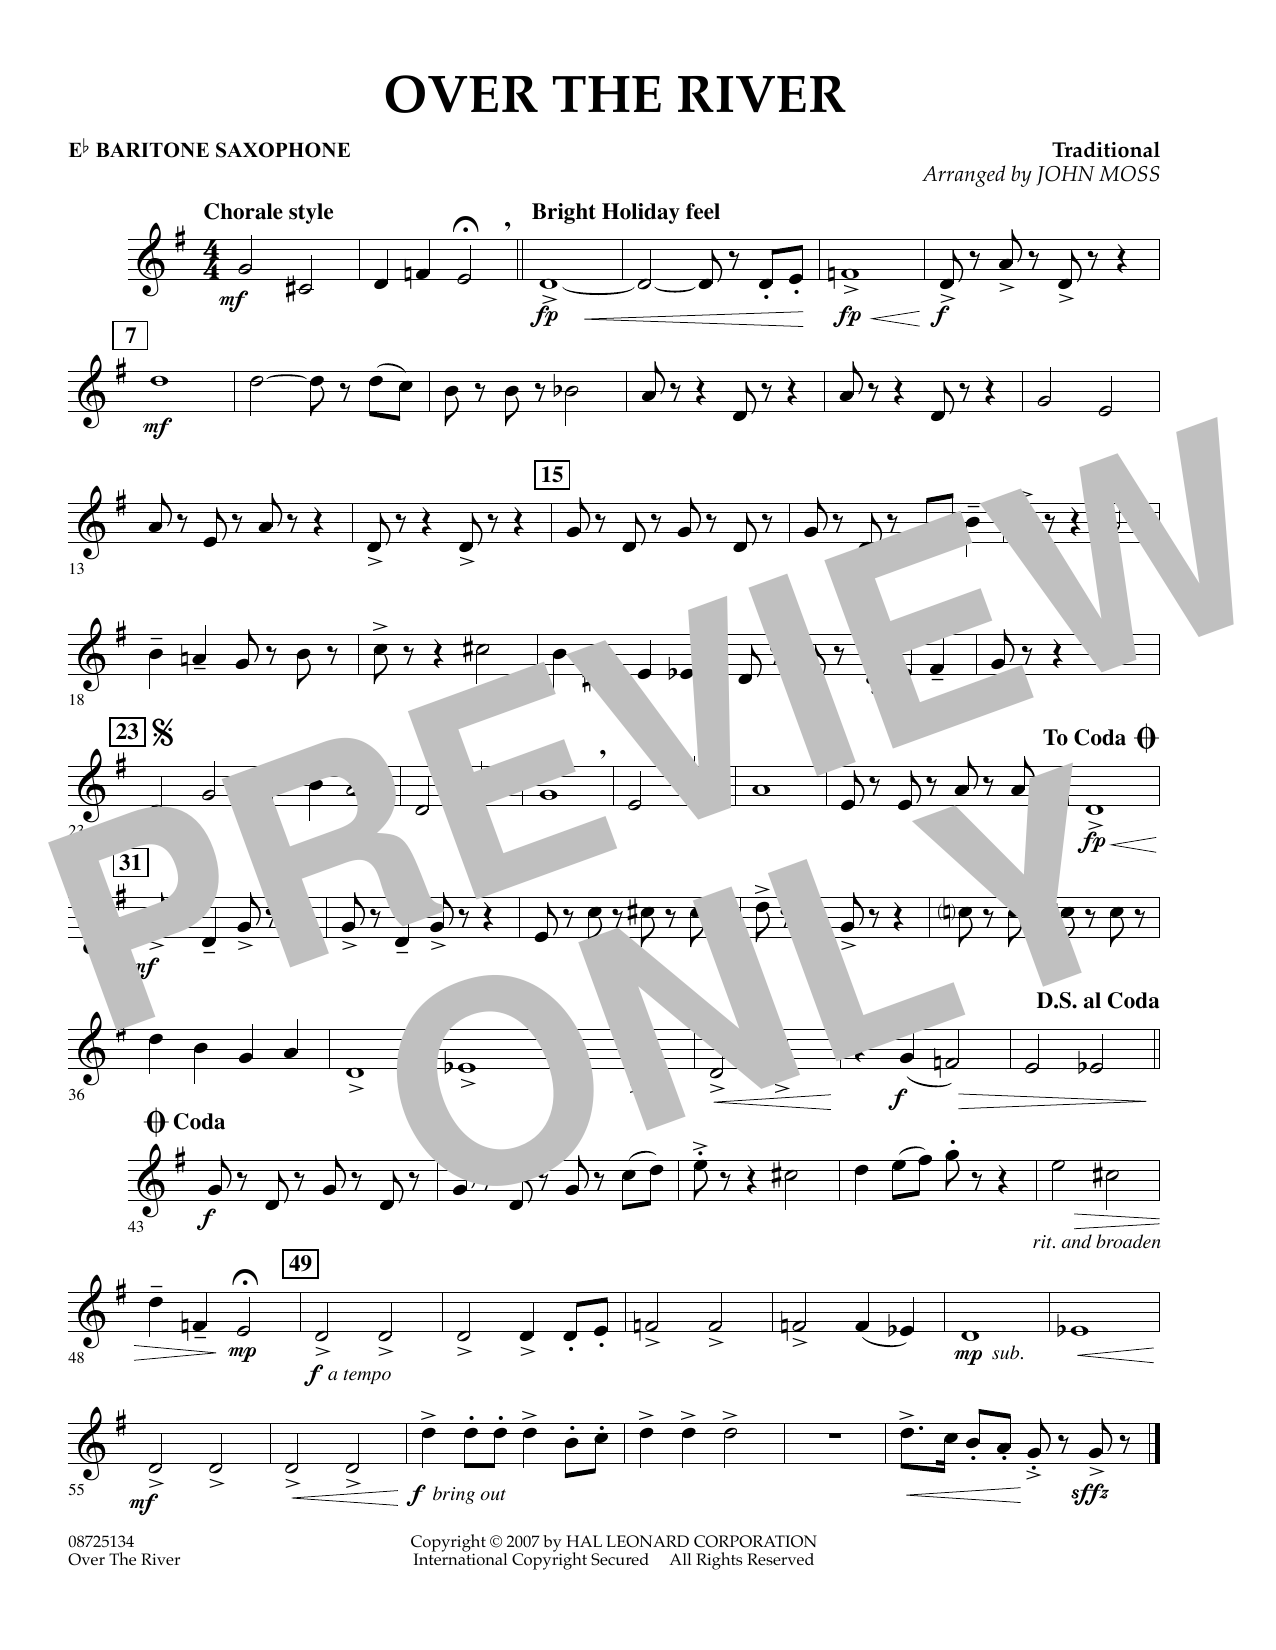 John Moss Over the River - Eb Baritone Saxophone sheet music preview music notes and score for Concert Band including 1 page(s)